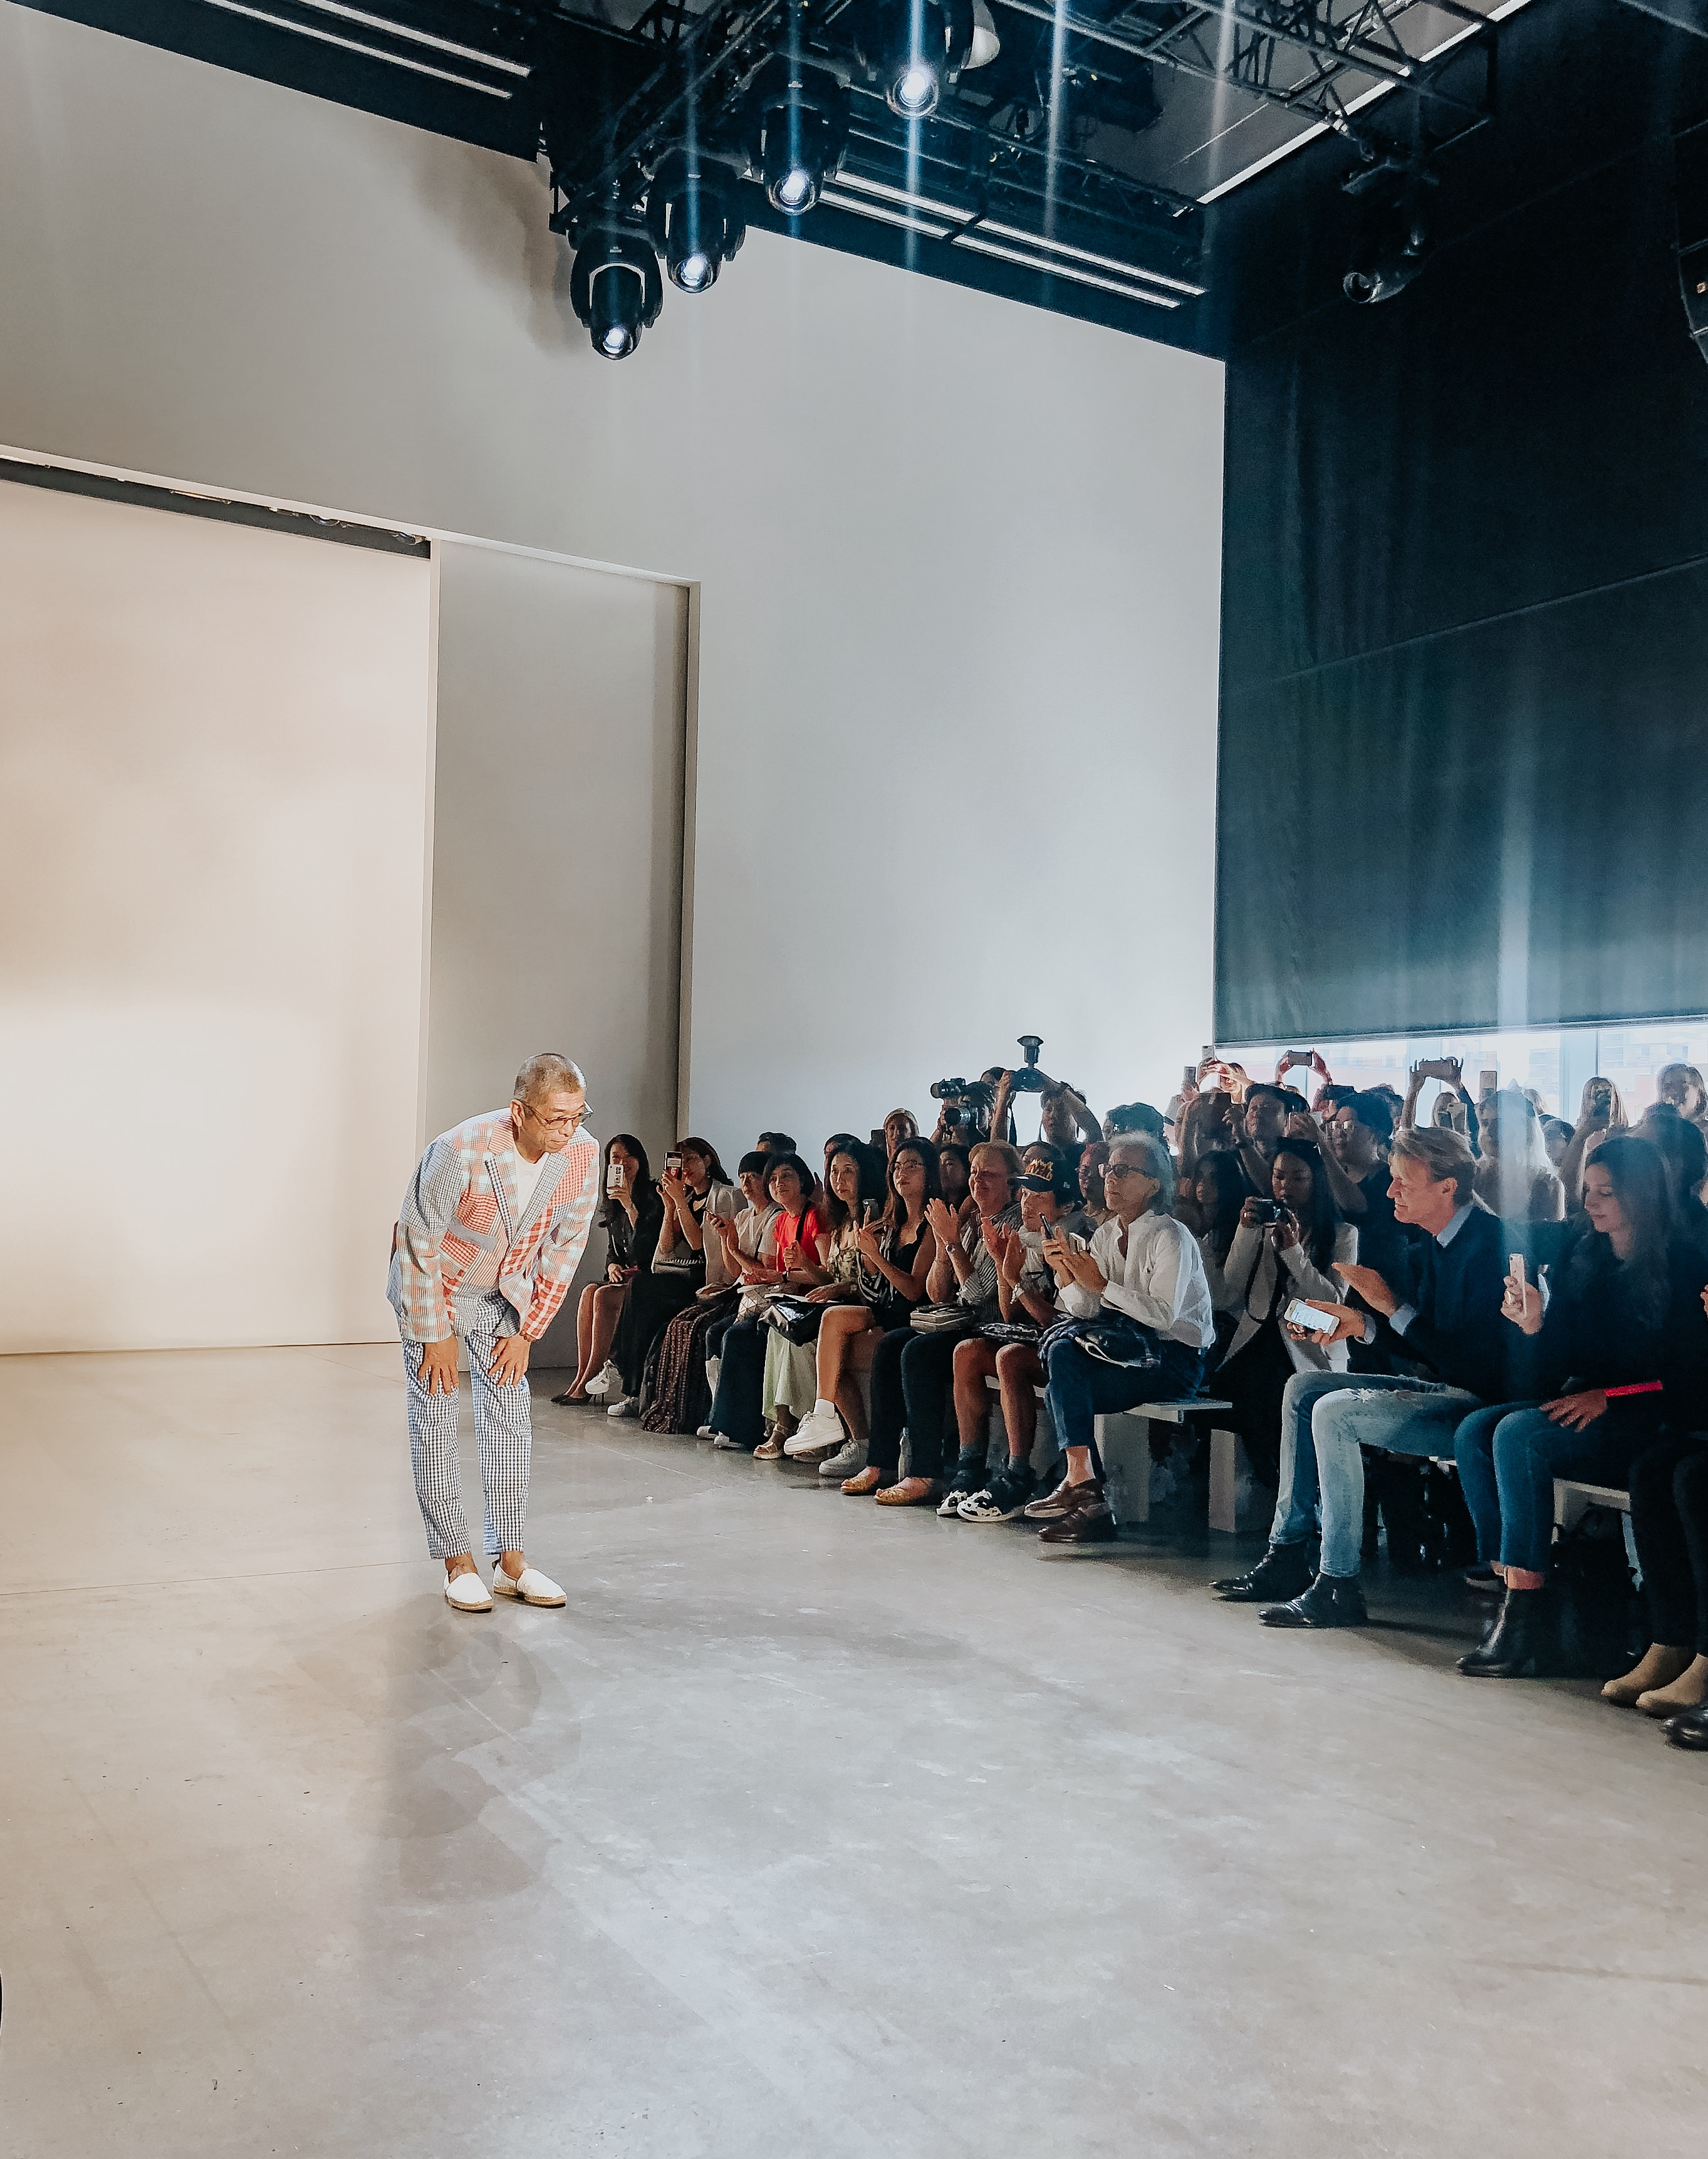 New York Fashion Week Recap - September 2018 | love 'n' labels www.lovenlabels.com